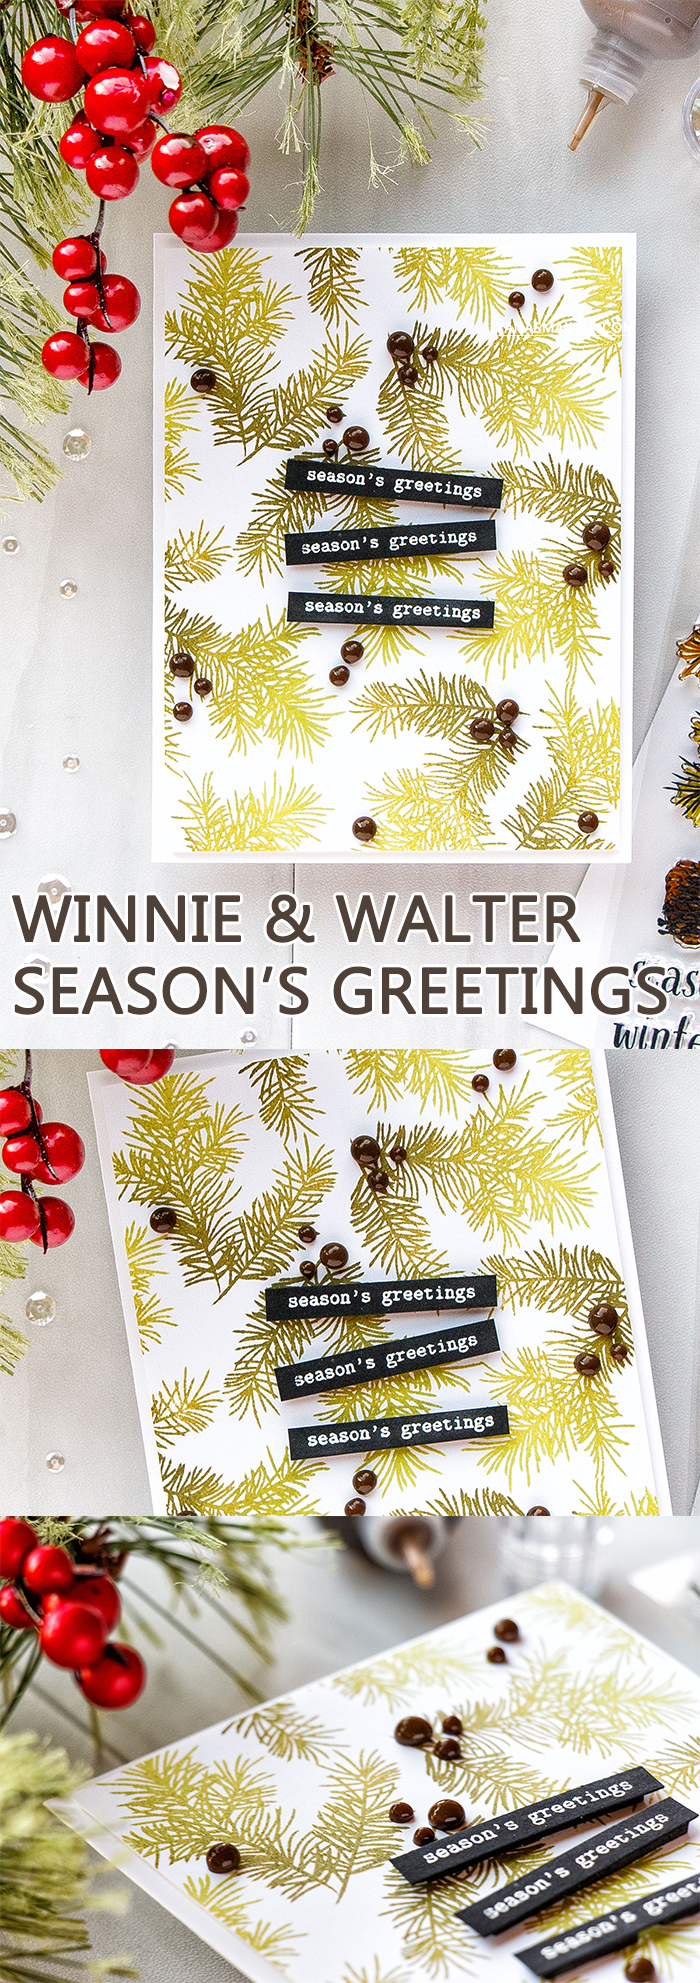 Winnie & Walter | Season's Greetings Card. World Cardmaking Day 2017 Blog Hop